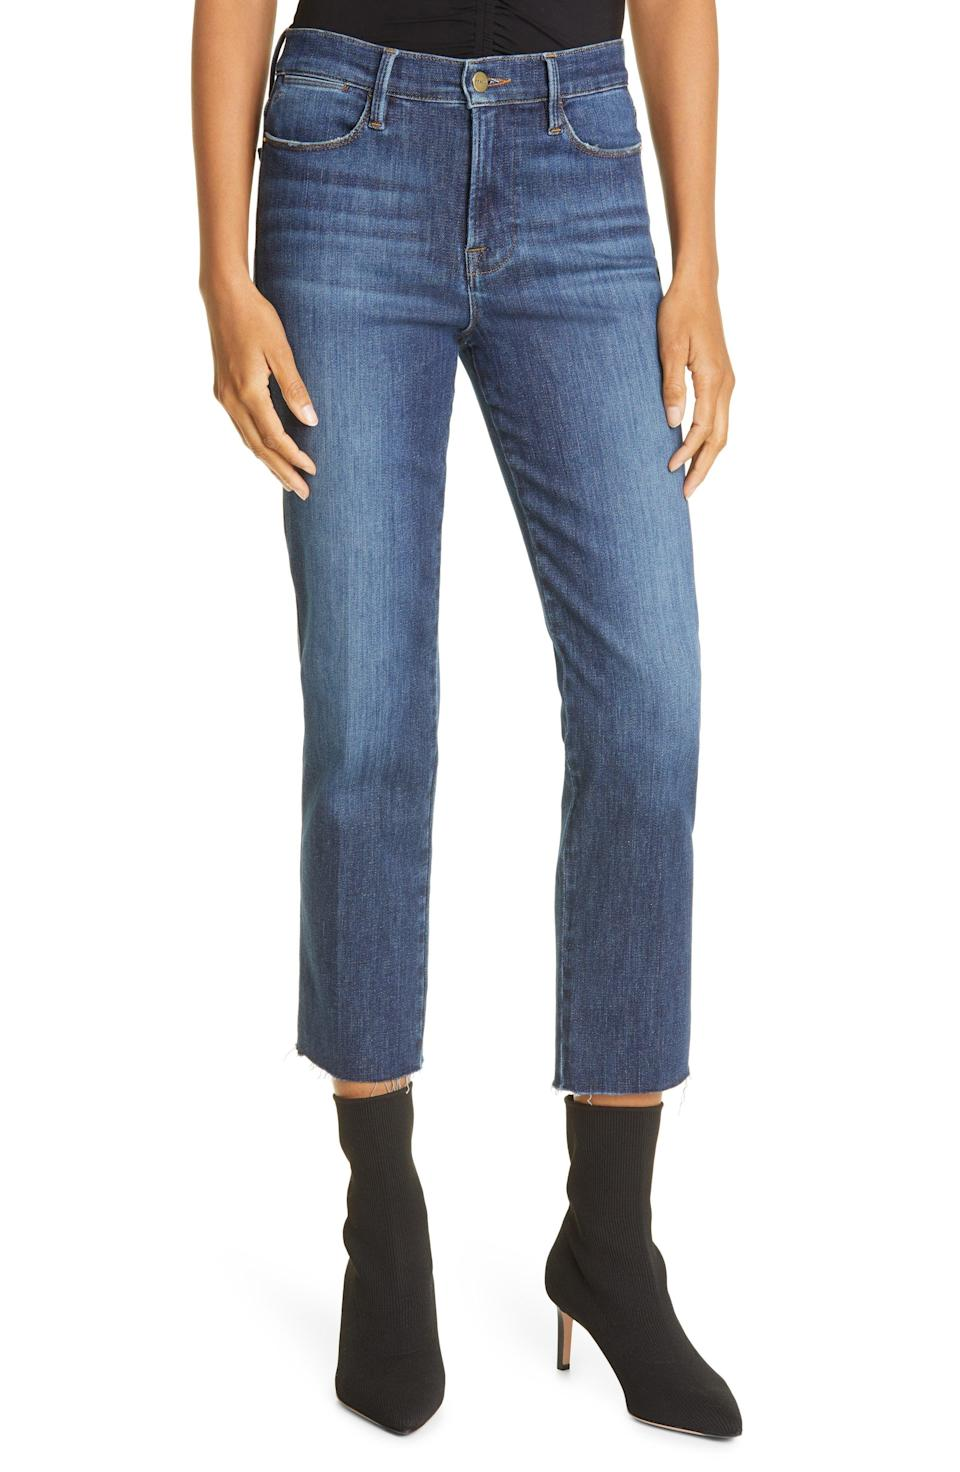 """<p><strong>FRAME</strong></p><p>nordstrom.com</p><p><a href=""""https://go.redirectingat.com?id=74968X1596630&url=https%3A%2F%2Fwww.nordstrom.com%2Fs%2Fframe-le-high-raw-hem-ankle-straight-leg-jeans-allesandro%2F5918663&sref=https%3A%2F%2Fwww.harpersbazaar.com%2Ffashion%2Ftrends%2Fg36946278%2Fnordstrom-anniversary-sale-fashion%2F"""" rel=""""nofollow noopener"""" target=""""_blank"""" data-ylk=""""slk:Shop Now"""" class=""""link rapid-noclick-resp"""">Shop Now</a></p><p><strong>Sale: $146</strong></p><p><strong>After Sale: $218</strong></p><p>The wash, rise, leg <em>and </em>raw bottom hem of these Frame jeans are all chef's kiss. </p>"""